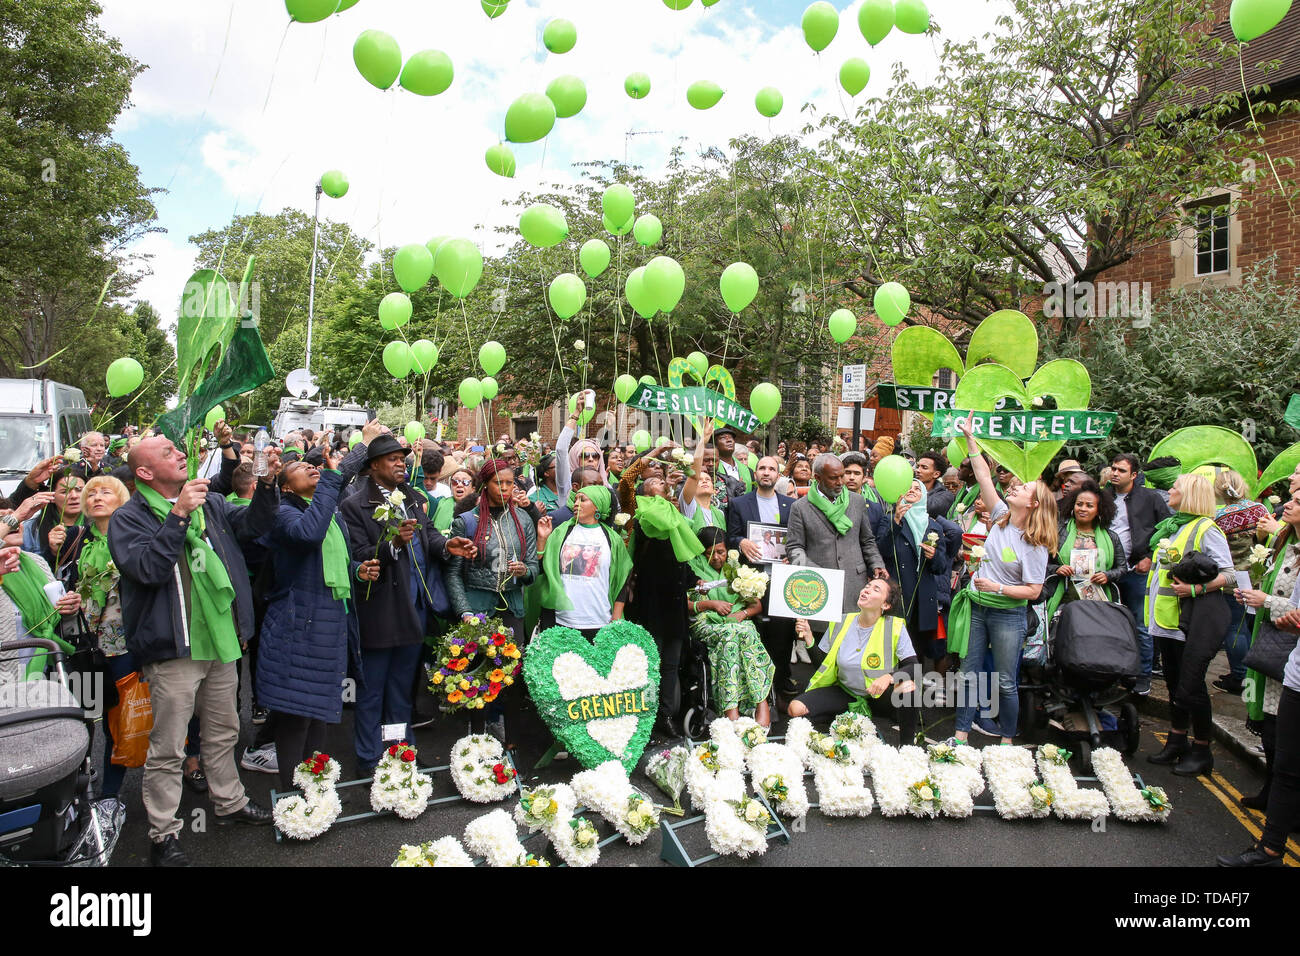 North Kensington, West London. UK 14 Jun 2019 - Survivors, family and friends of the victims wear symbolic green scarf release green balloons to commemorate the second anniversary of the Grenfell Tower fire. On 14 June 2017, just before 1:00Êam a fire broke out in the kitchen of the fourth floor flat at the 24-storey residential tower block in North Kensington, West London, which took the lives of 72 people. More than 70 others were injured and 223 people escaped.  Credit: Dinendra Haria/Alamy Live News - Stock Image